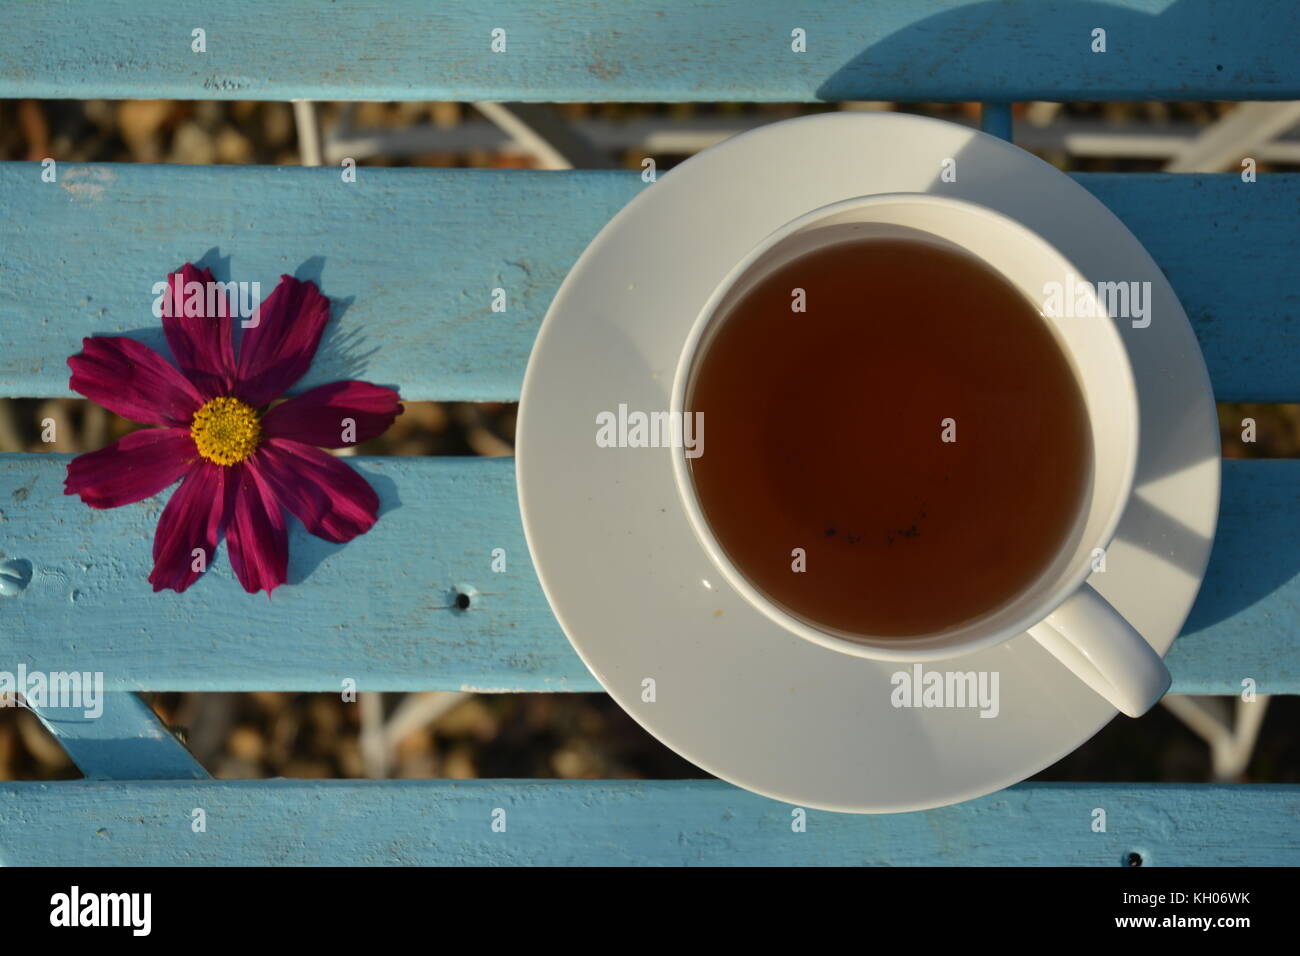 Cup of Tea and Flower on blue table - Stock Image